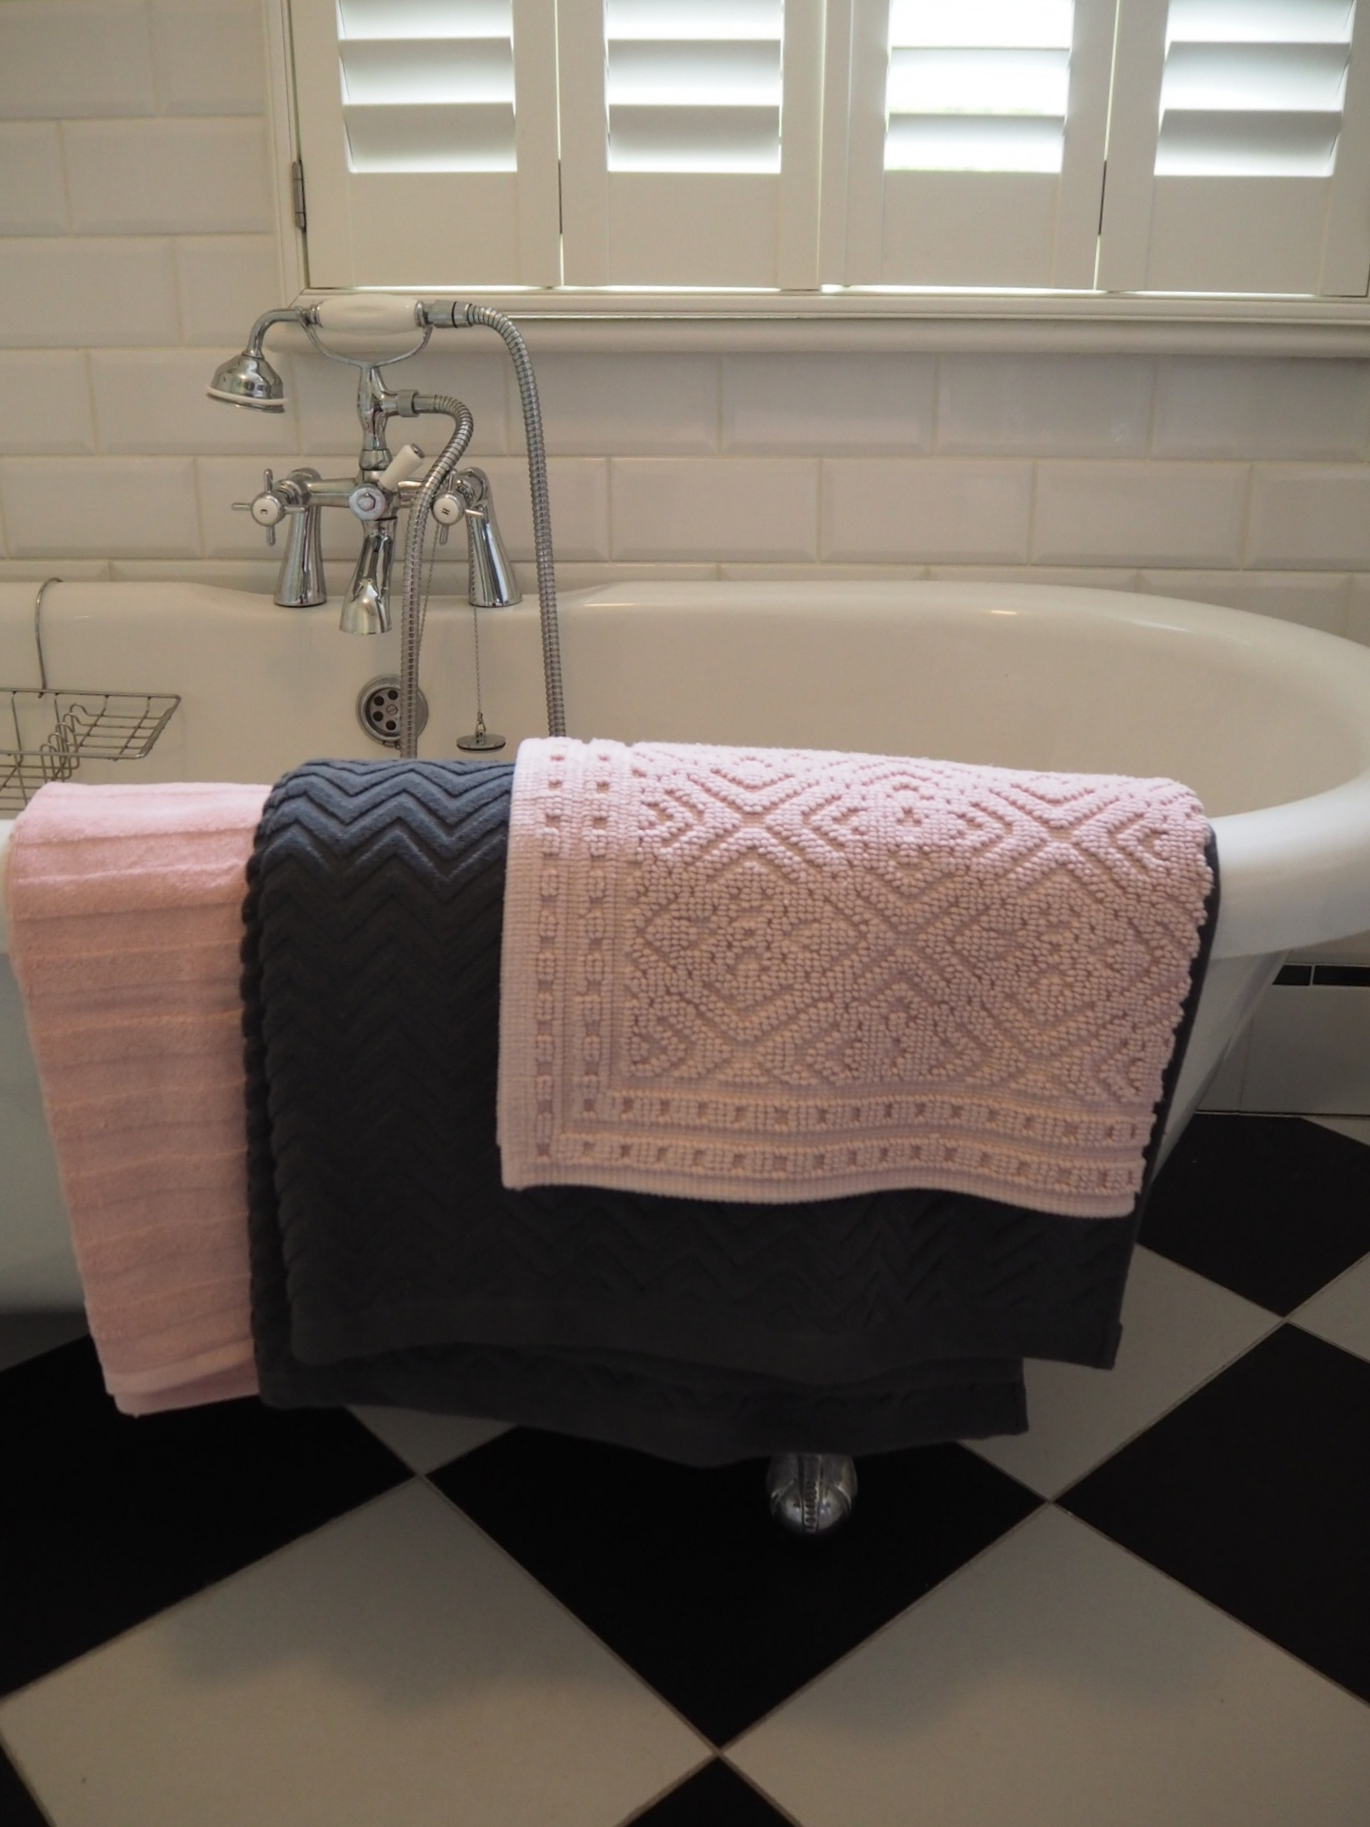 H&M BLUSH PINK AND GREY TOWELS